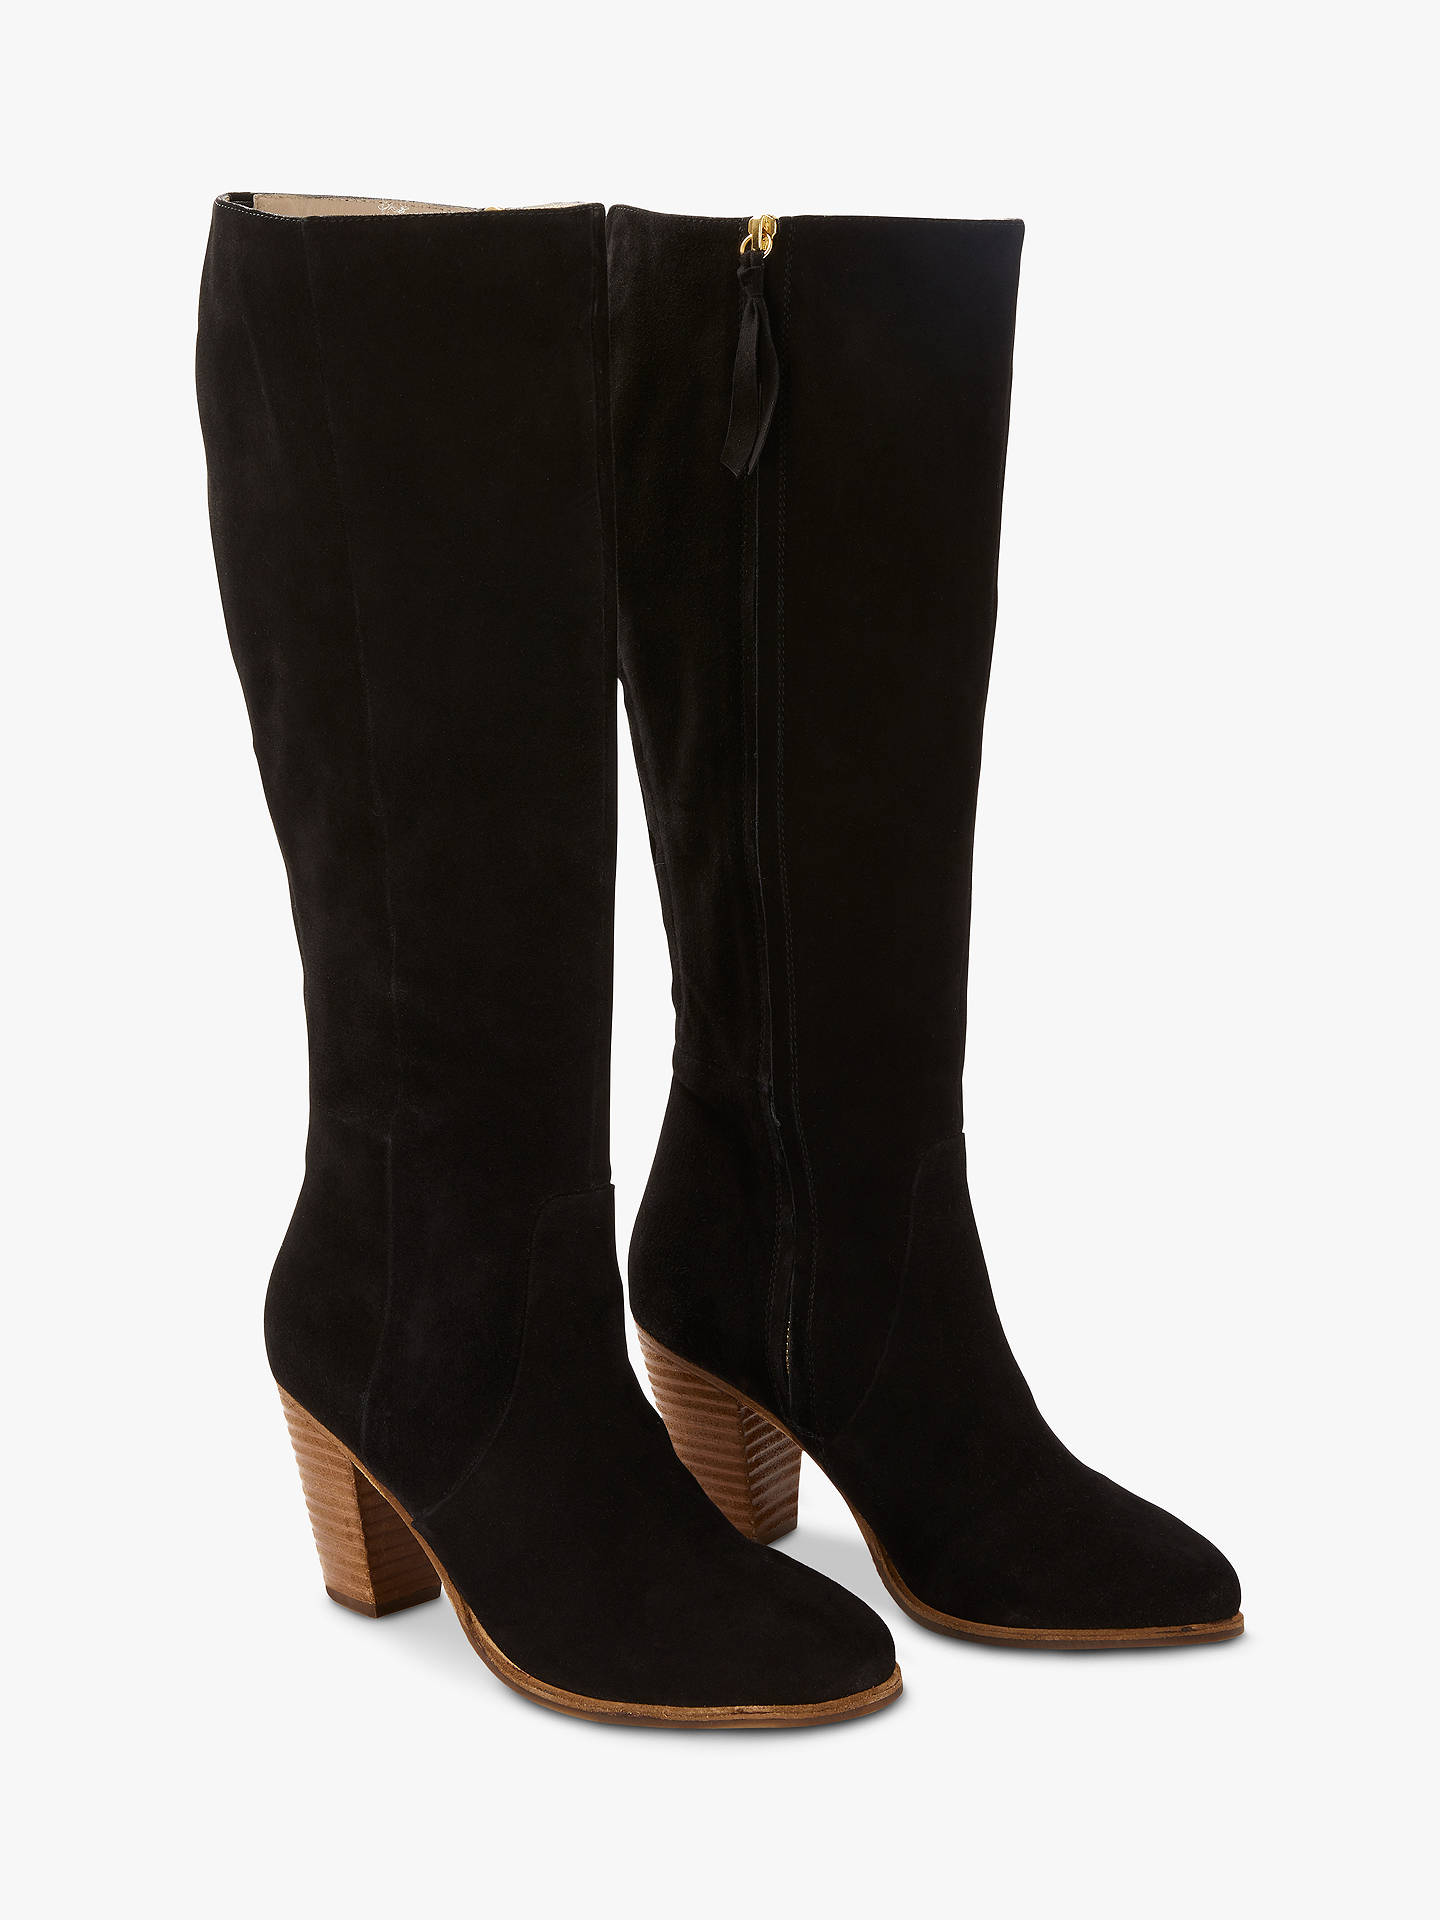 BuyBoden Temple Knee High Boots, Black Suede, 4 Online at johnlewis.com